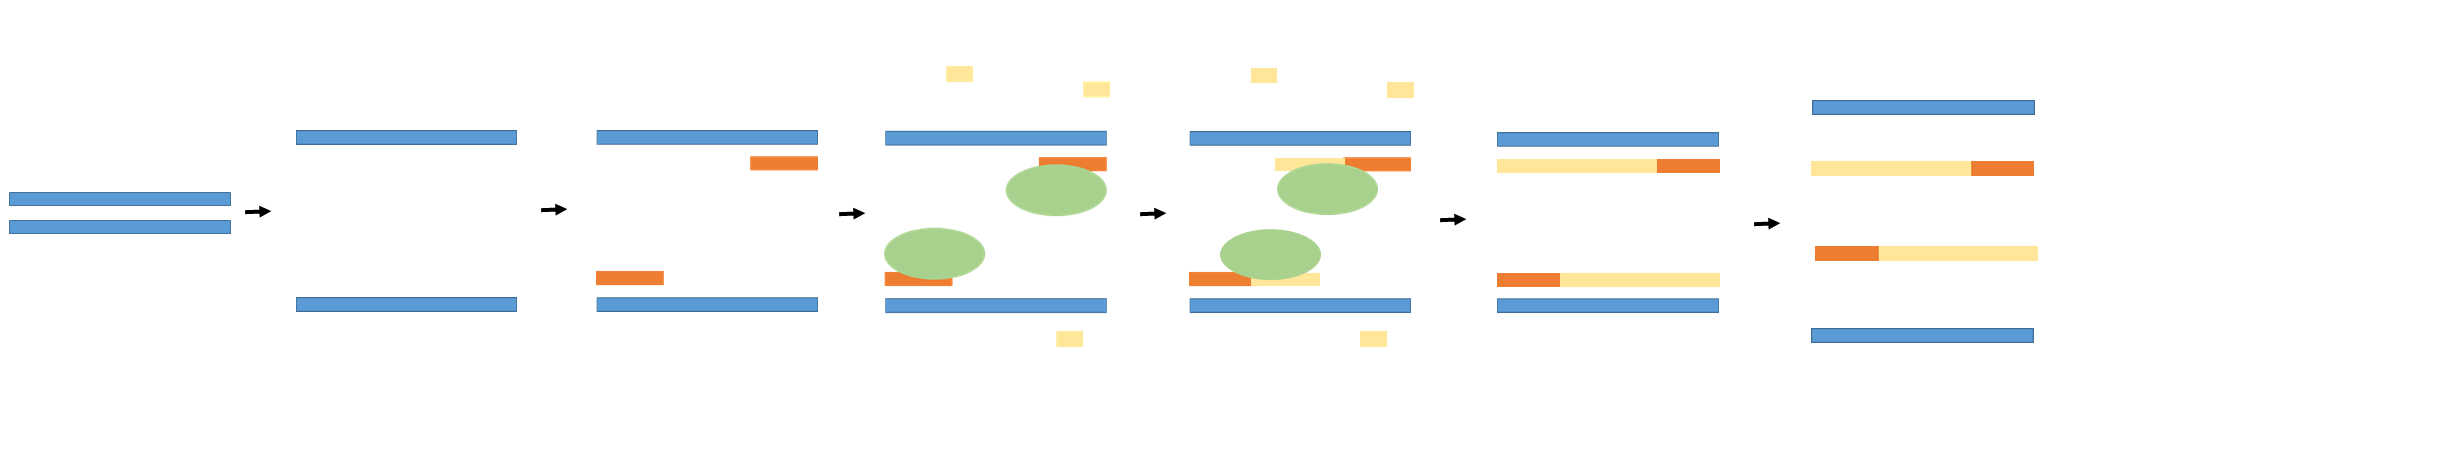 Double stranded DNA is heated and denatures into single stranded DNA. A primer (orange) then binds to the end of the target sequence. The enzyme taq polymerase (green) then binds to the primer sequence and attaches dNTPs (yellow) by base pairing to lengthen the primer DNA. The process continues through use of thermal cycling to continue copying the target sequence.